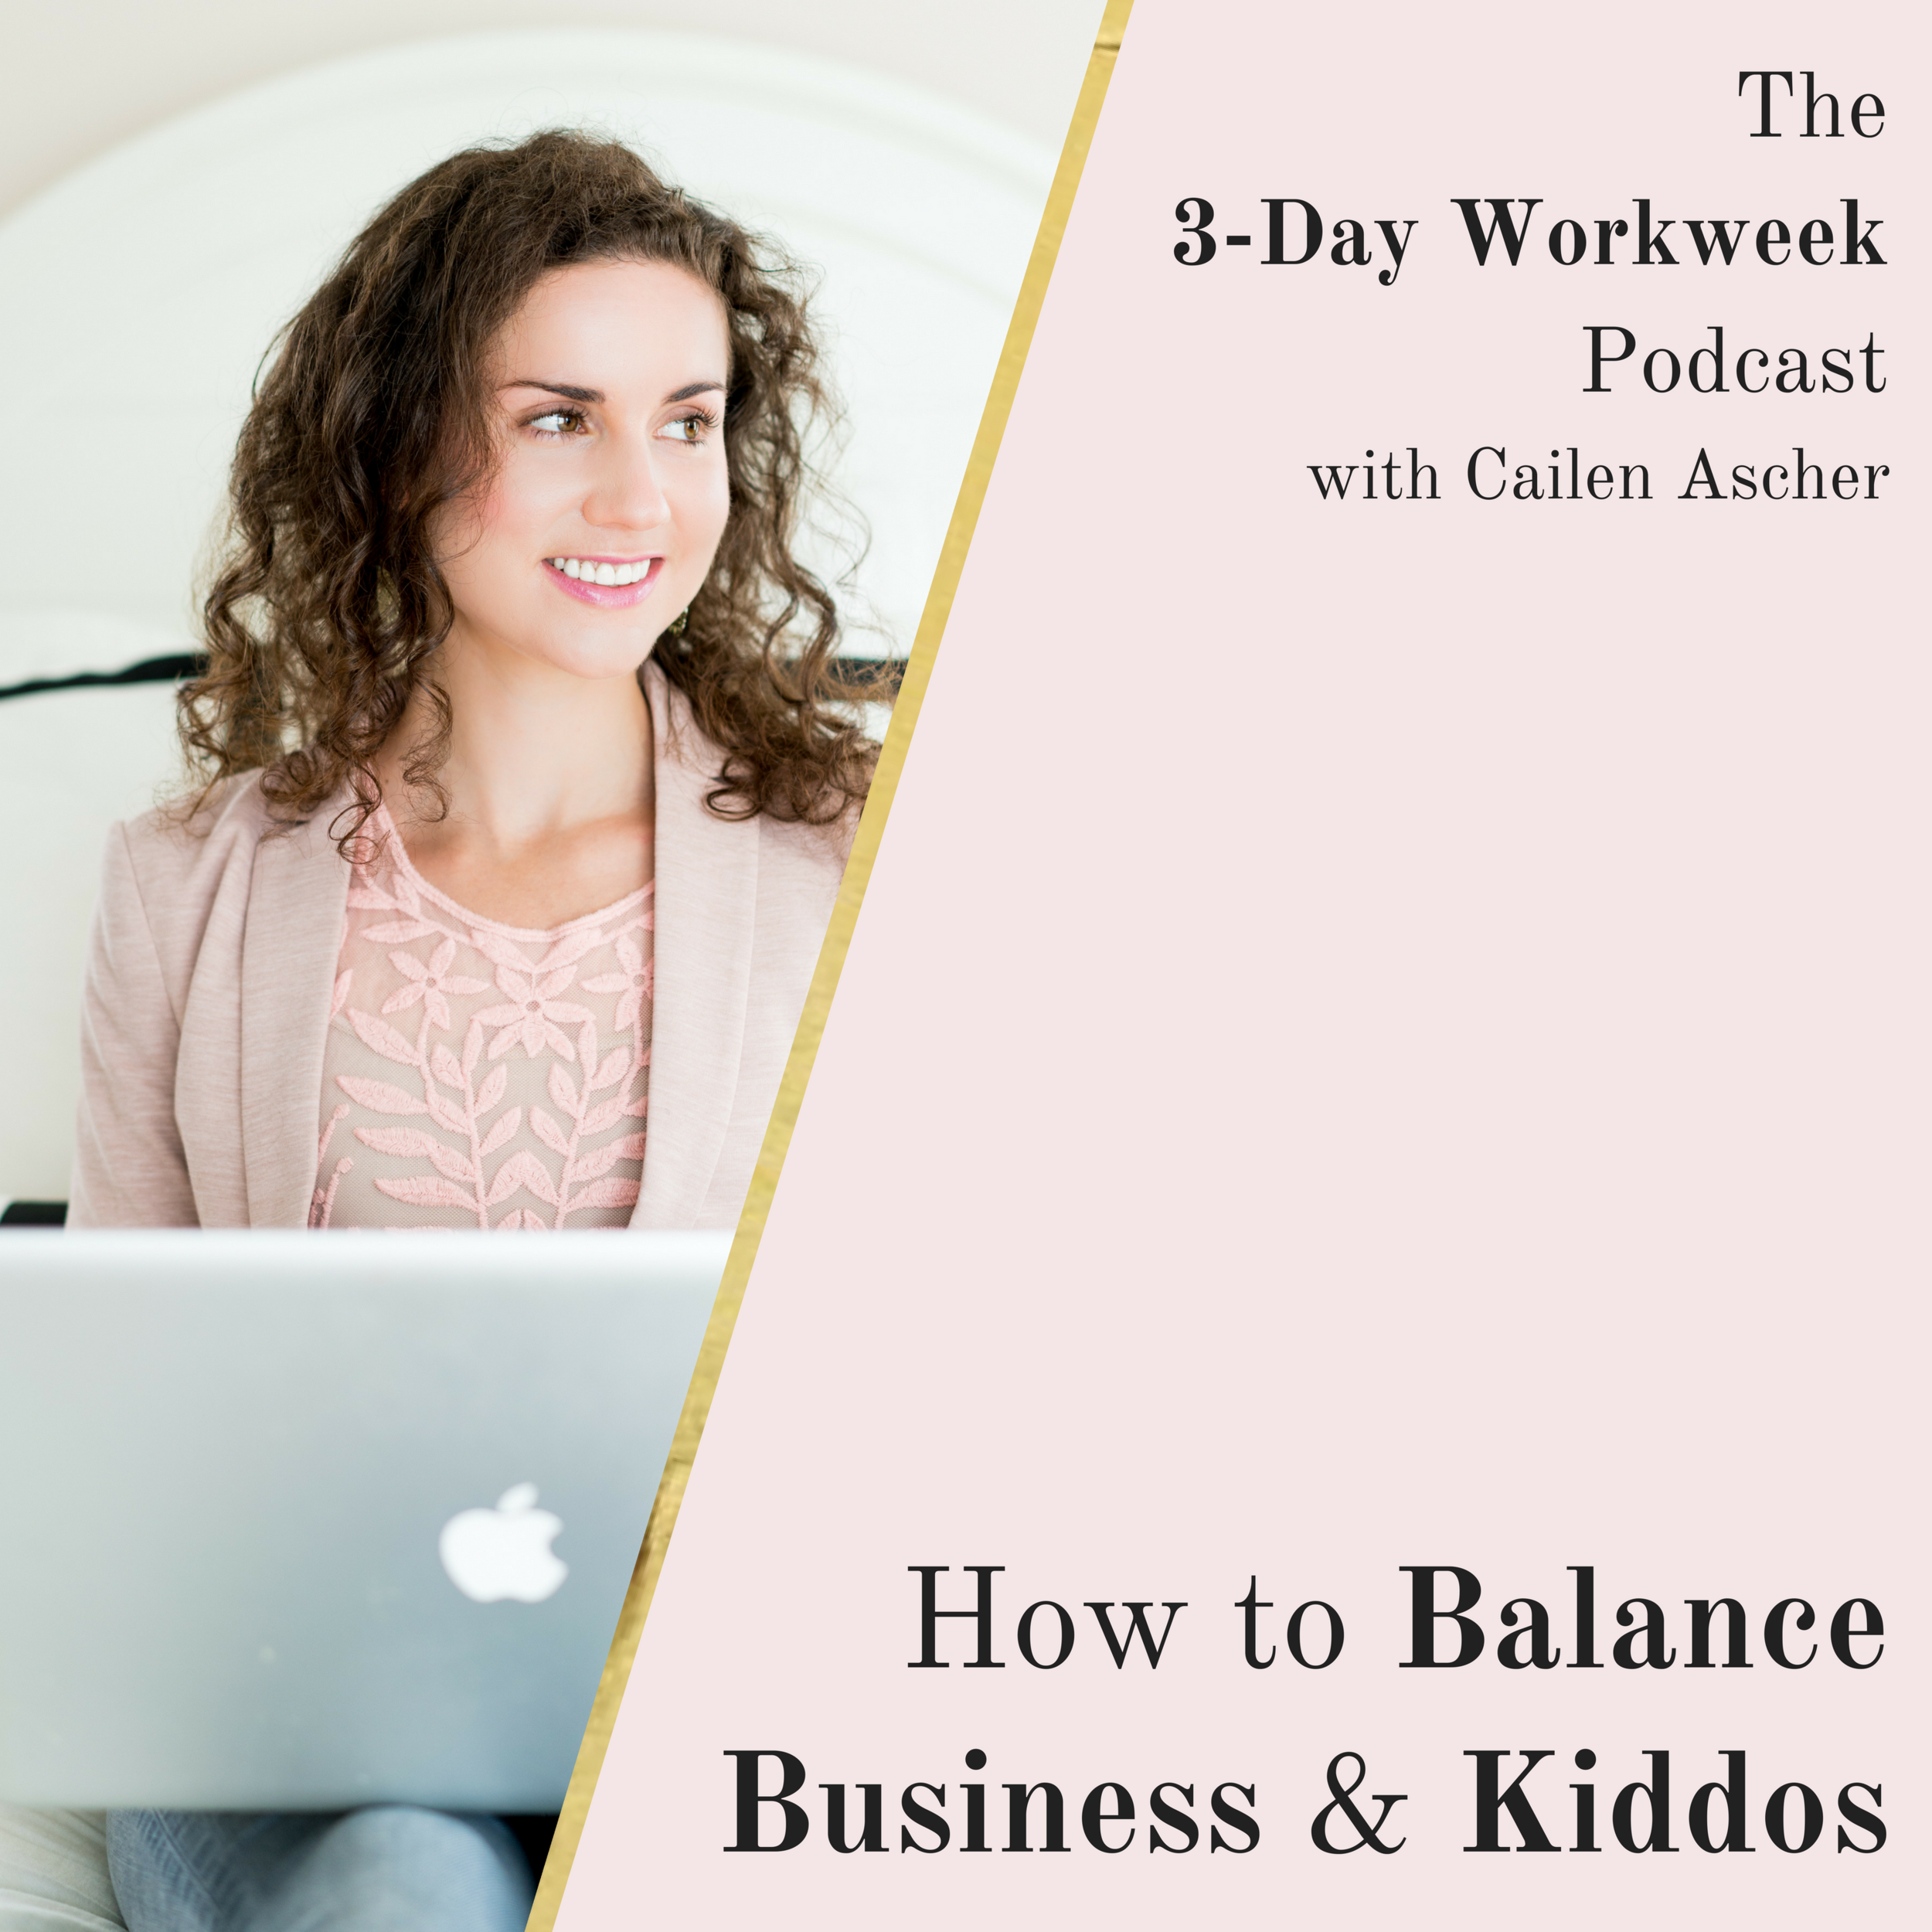 The 3-Day Workweek Podcast with Cailen Ascher - 2018-09-20 - How to Balance Business & Kiddos - Square Promo Image.png